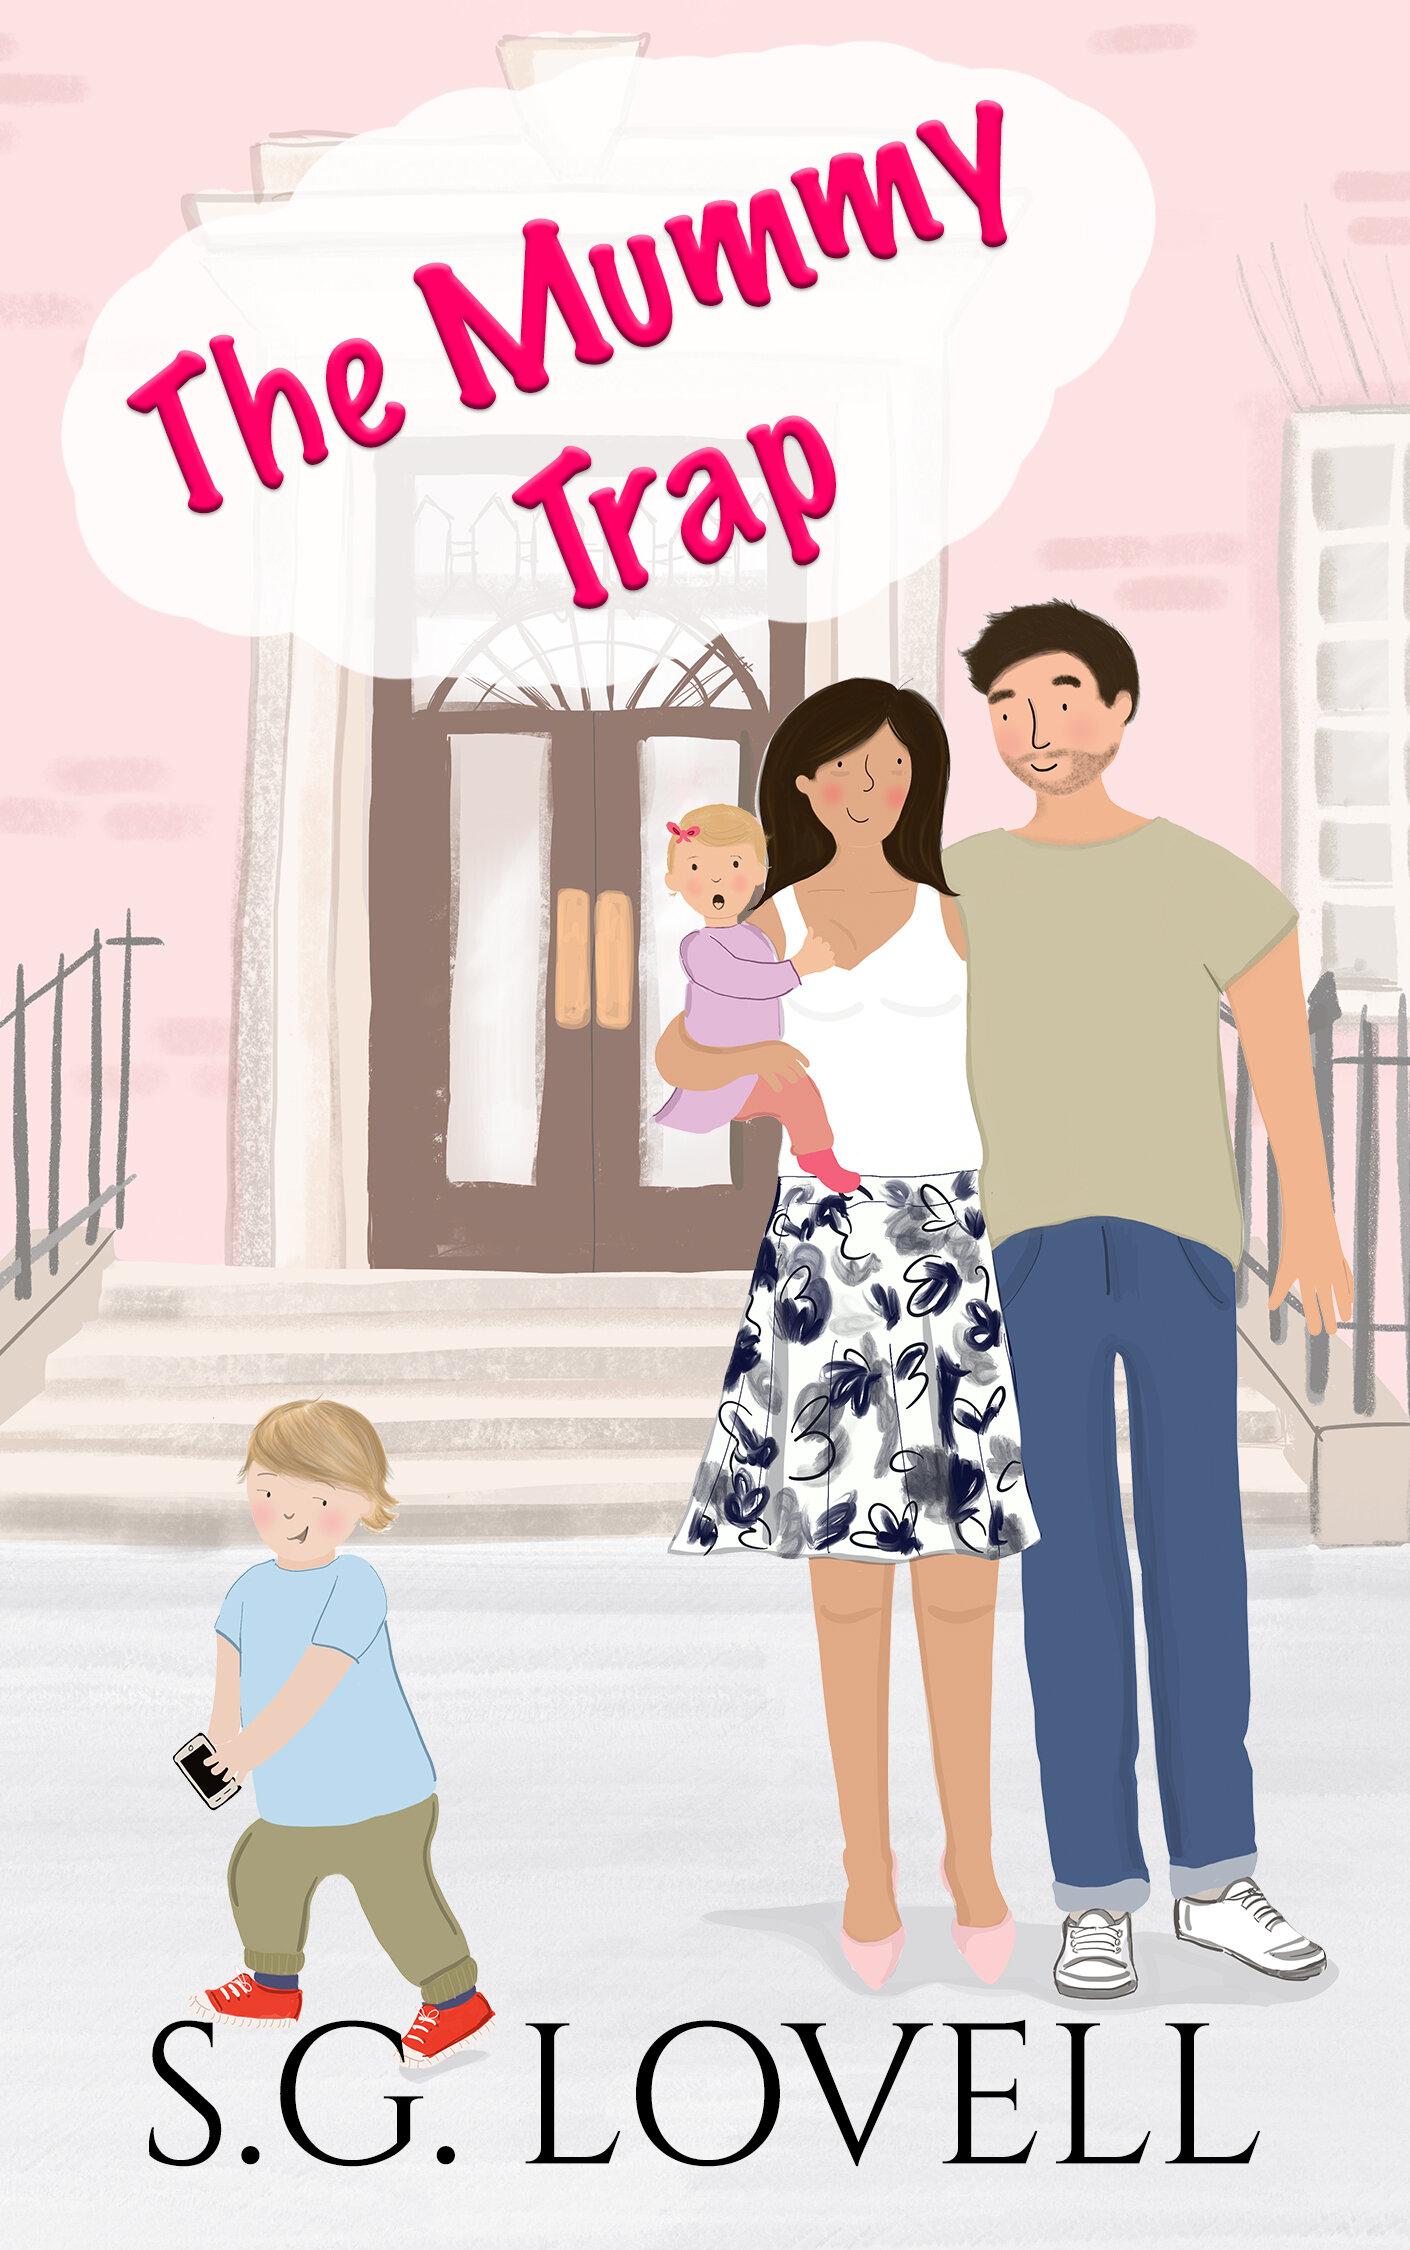 """Hilarious, addictive and a highly relatable read"" - — Mummyblogger Farron Owen"